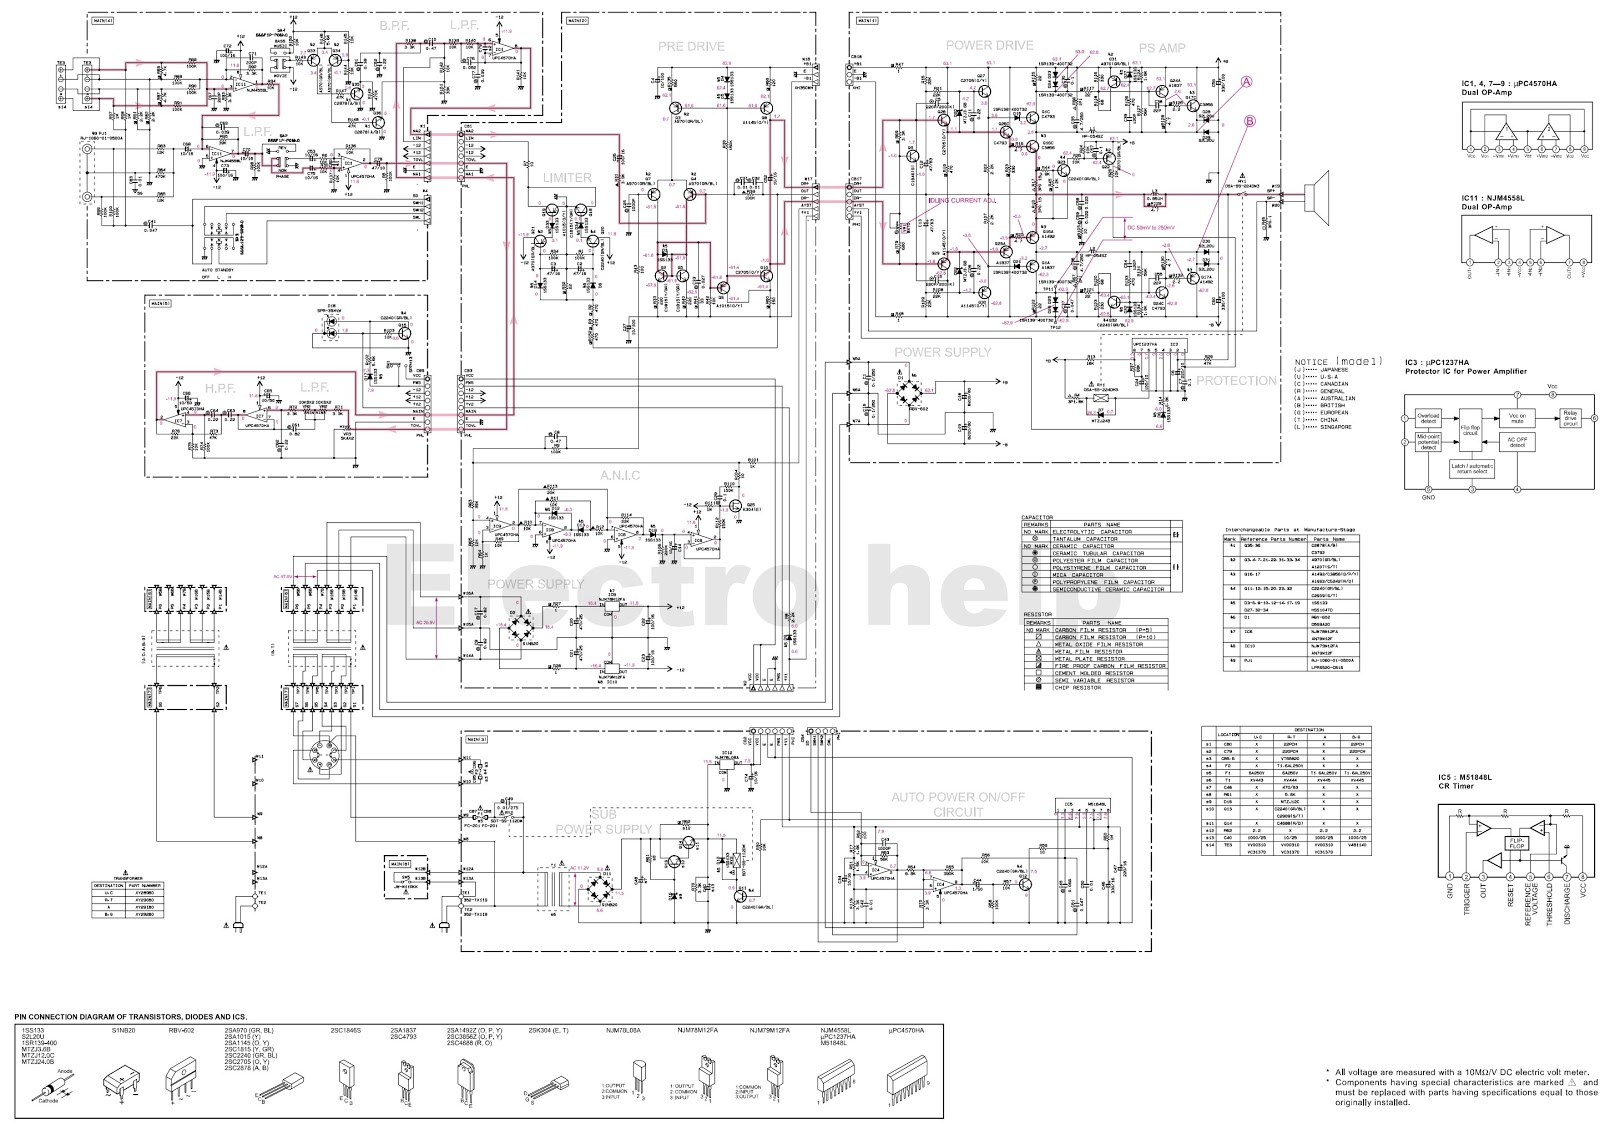 hight resolution of rv trailer kes wiring diagram wiring diagram advance rv trailer kes wiring diagram